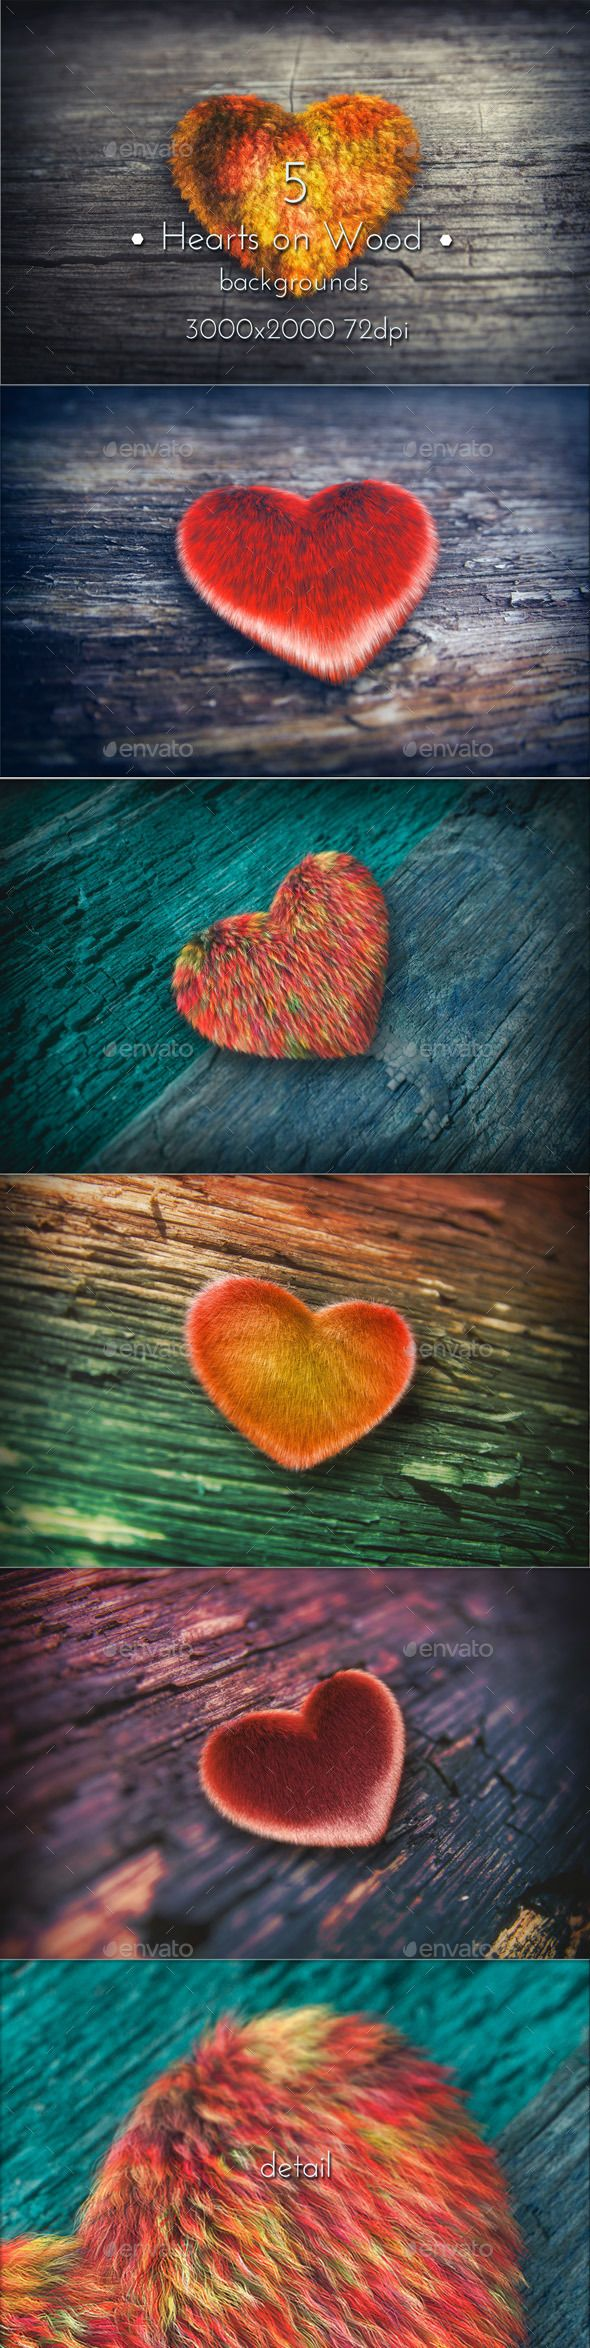 Hearts on Wood. Hearts on Wood Valentine Collection Backgrounds. 5 JPG images. 3000×2000 (3:2 format), 72 DPI. #hearts #valentine #love #design #graphicriver